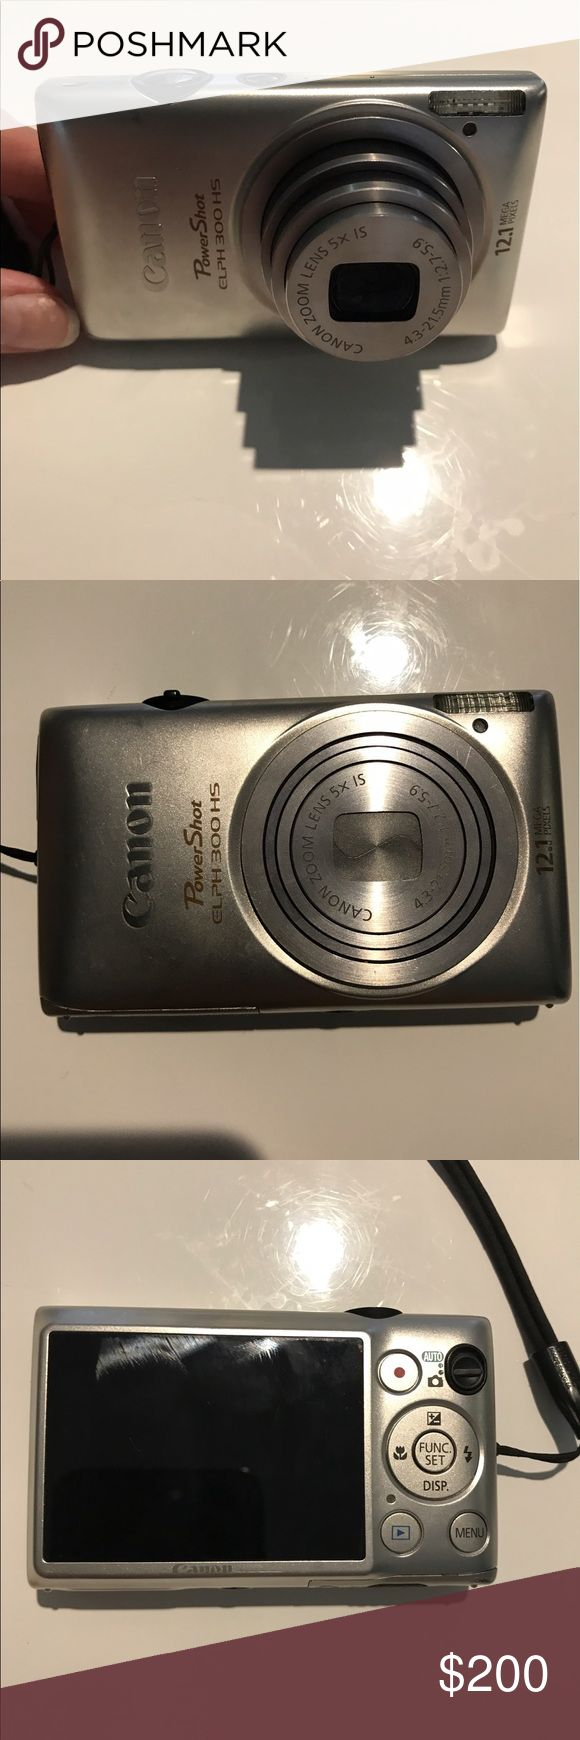 Canon Powershot ELPH-300 HS 12.1 MP Digital Camera Worlds thinnest digital camera! Great working condition with no major flaws. Comes with extra battery and camera case. Needs memory card Other